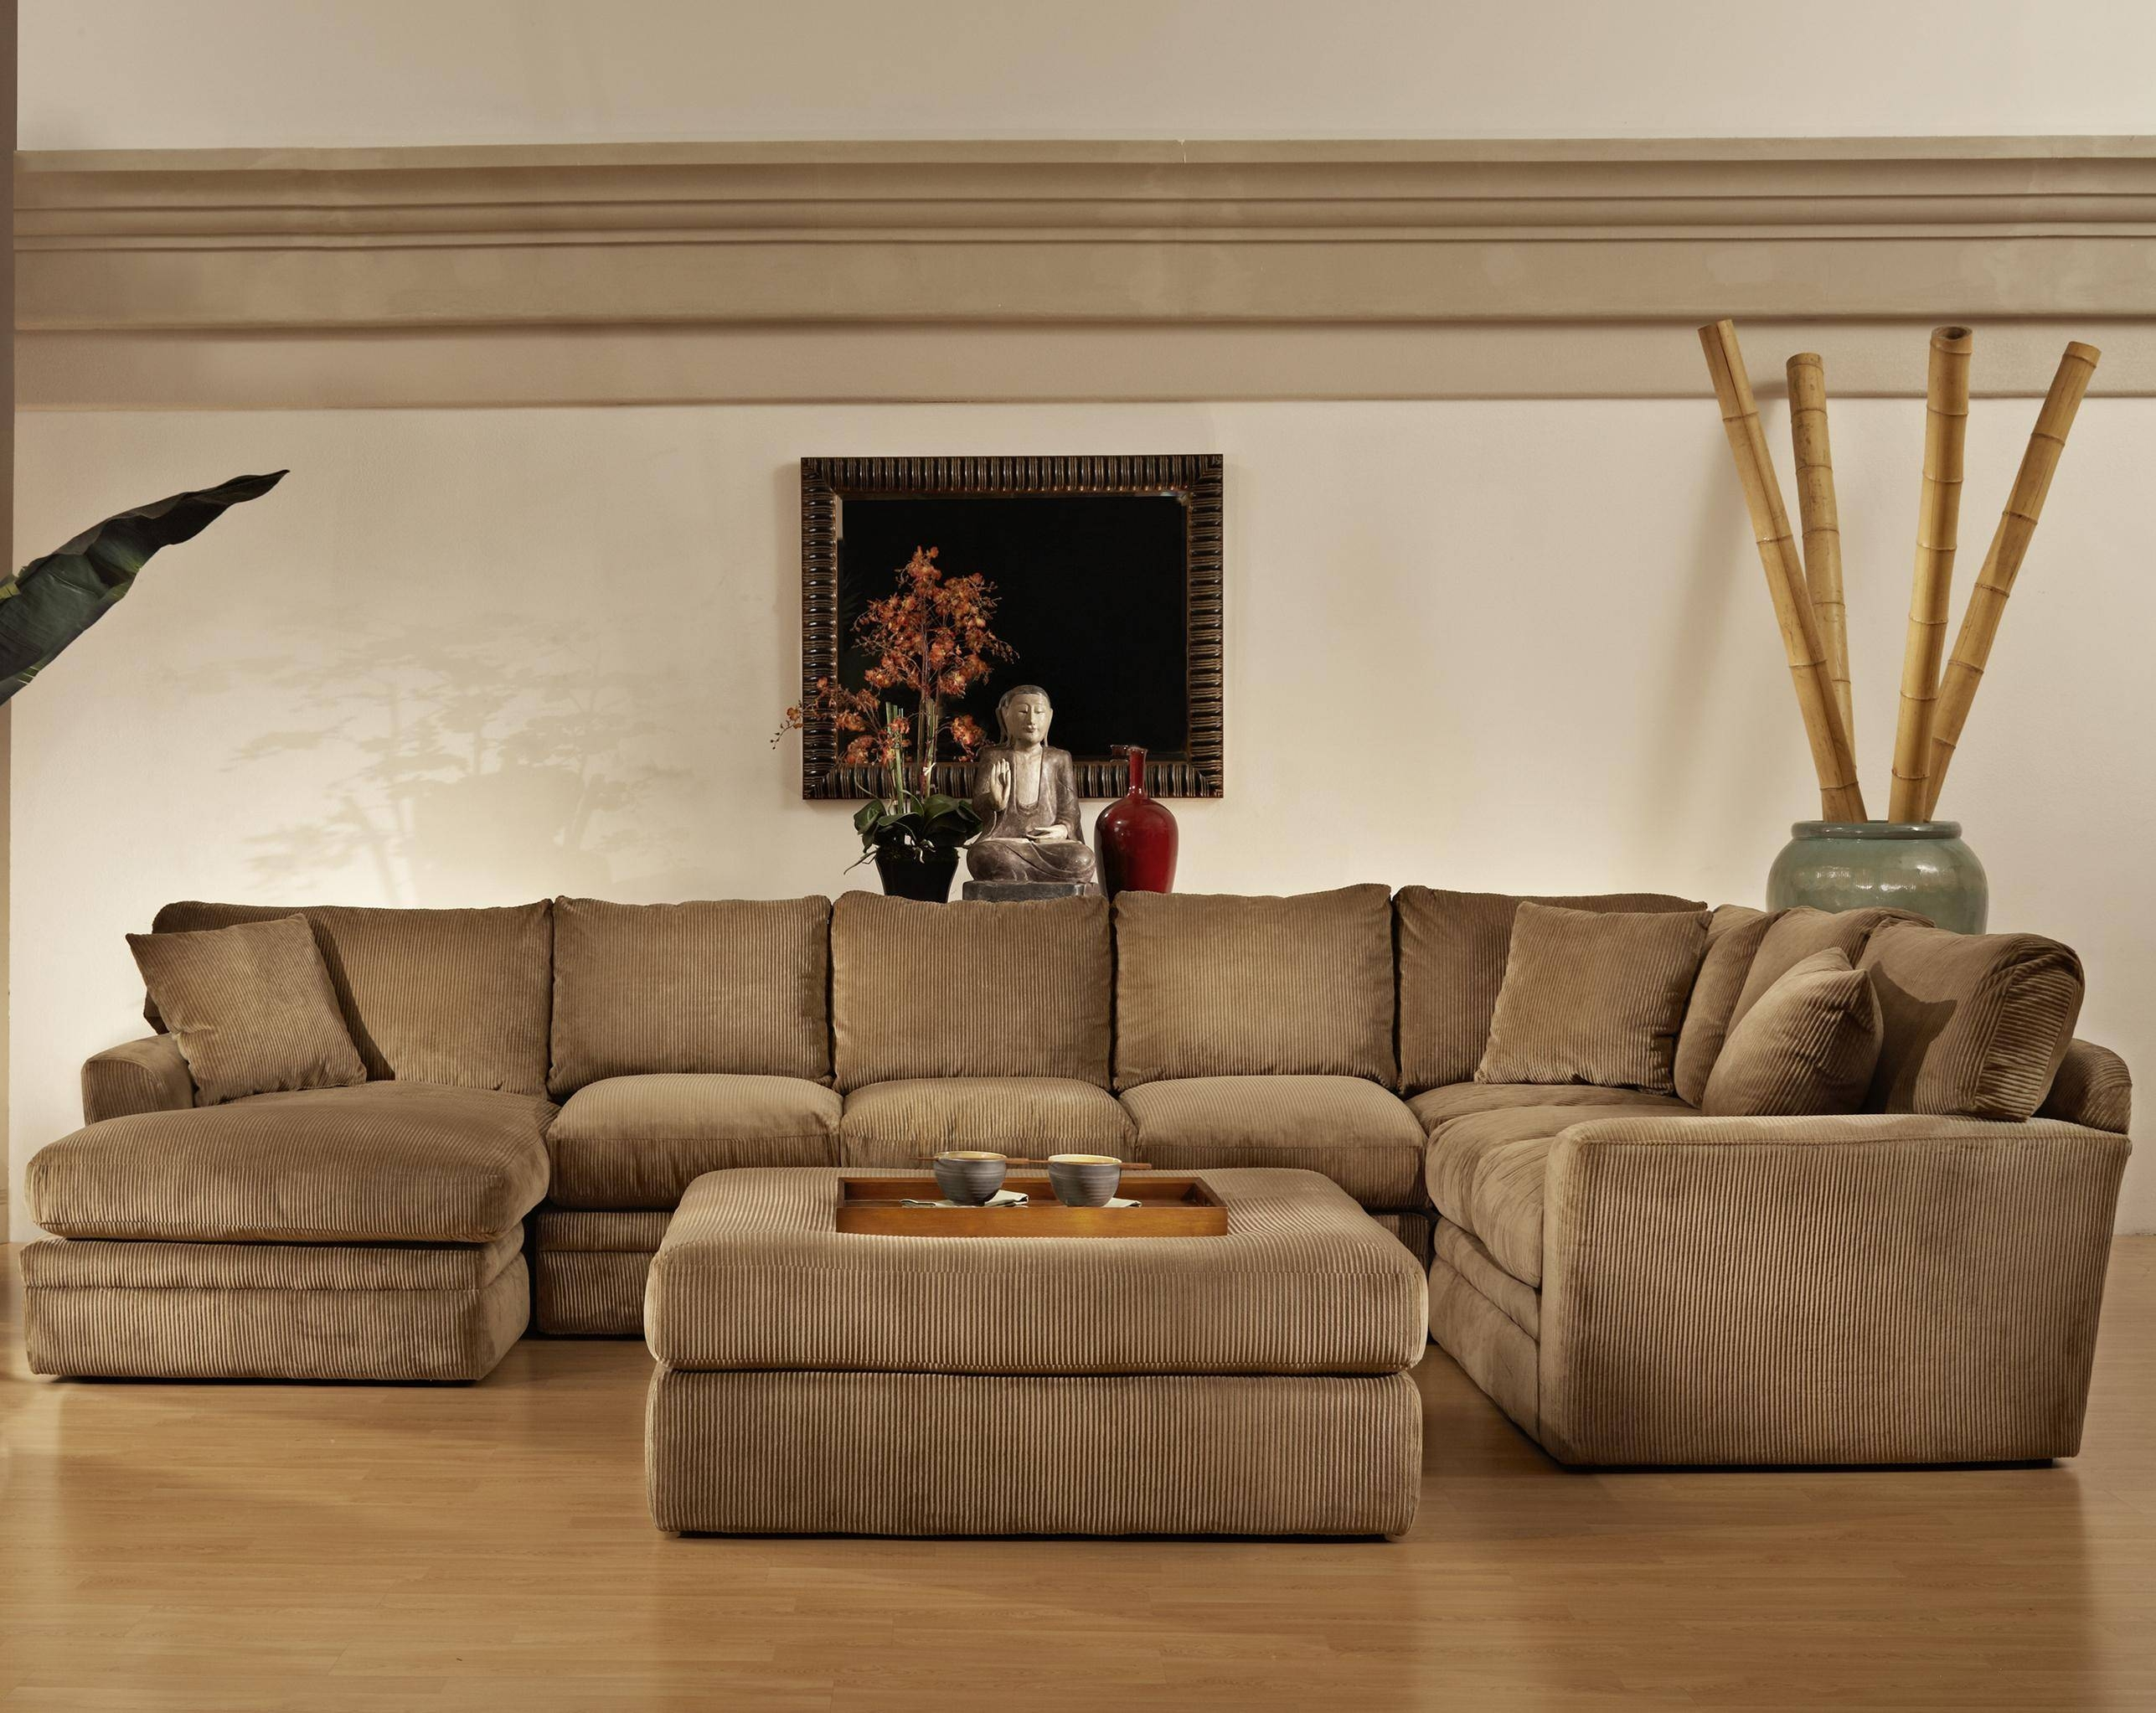 Astonishing 3 Piece Sectional Sofa With Recliner 35 For Your inside Sectional Sofas Portland (Image 2 of 30)